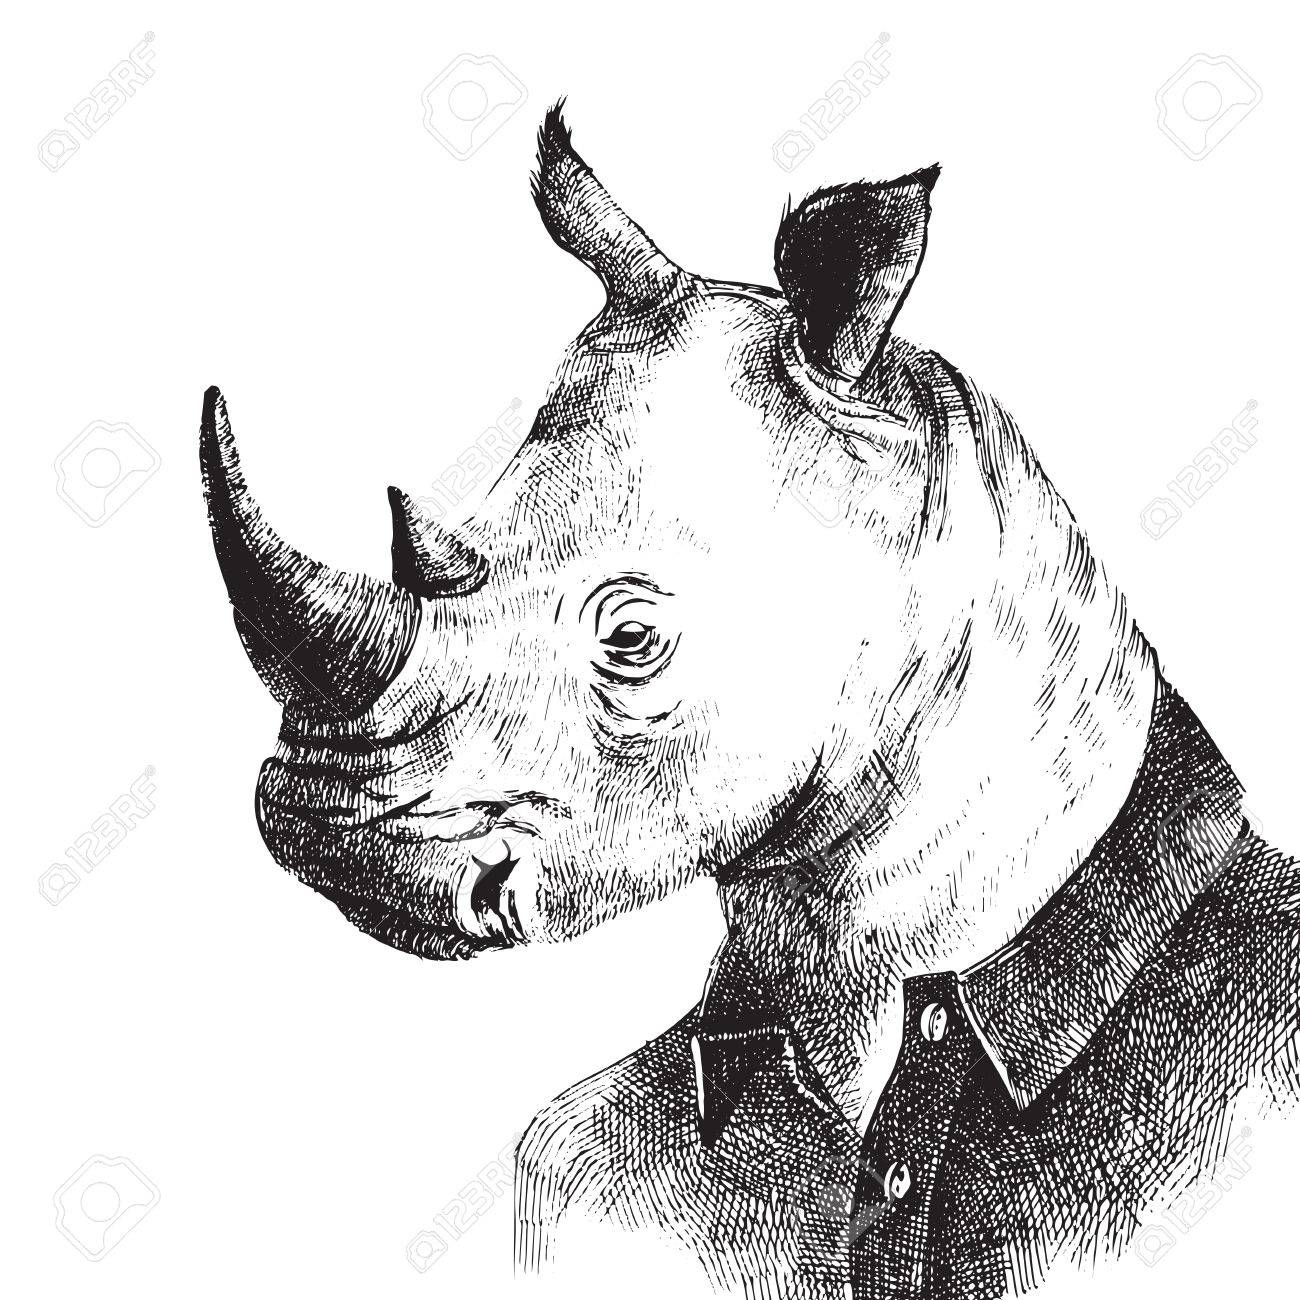 Hand drawn black and white dressed up rhino in hipster style - 52068975